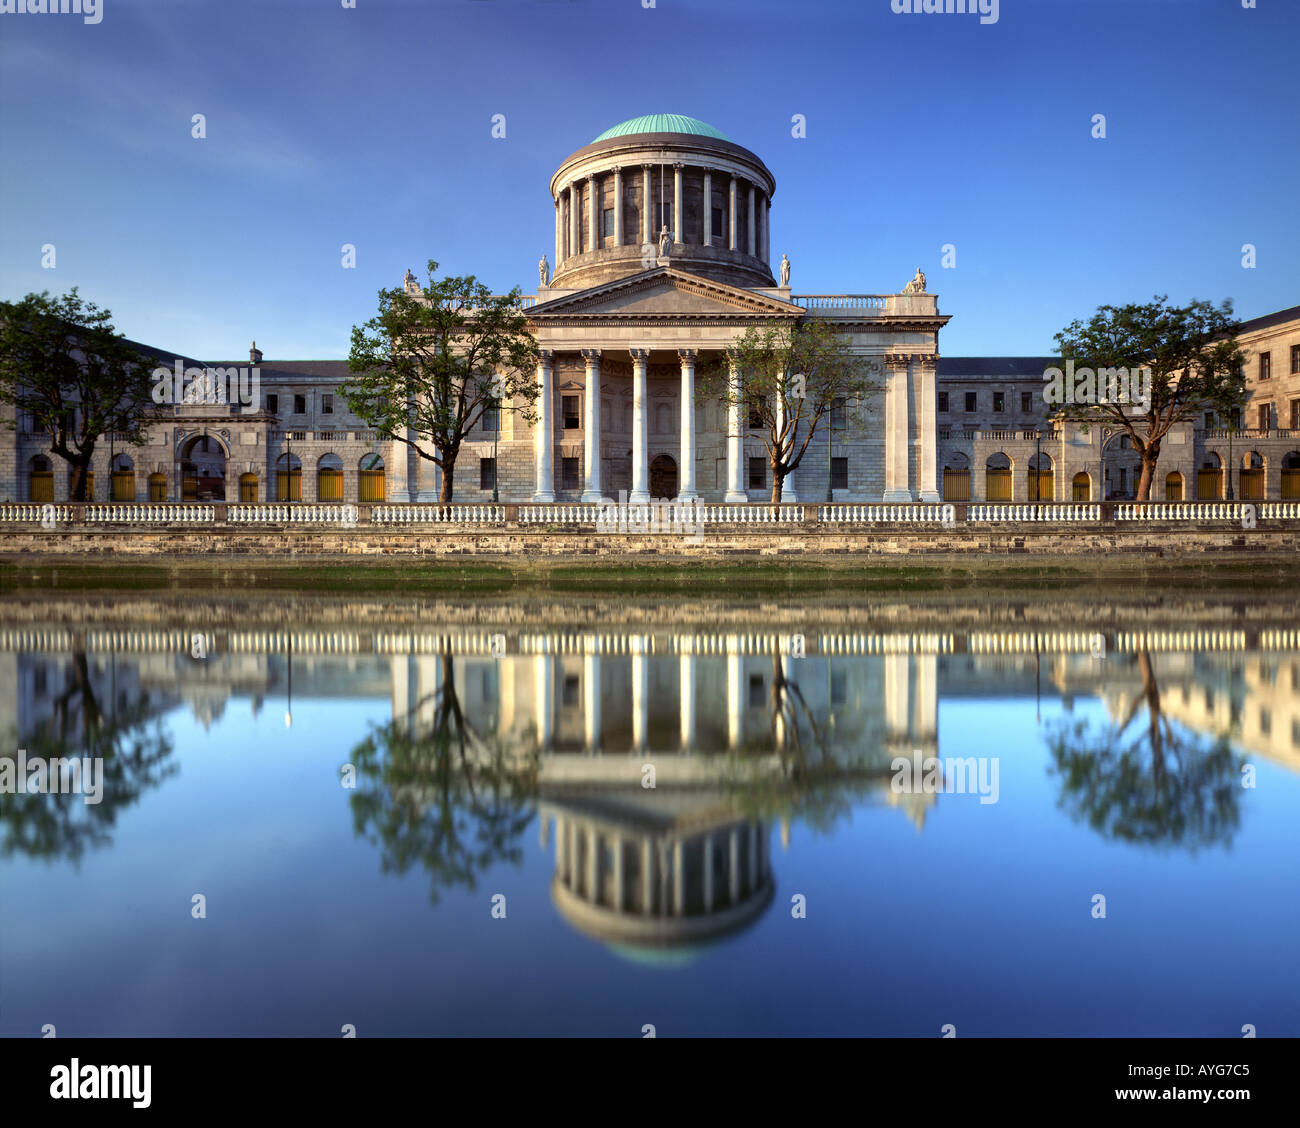 IE - DUBLIN: Four Courts - Stock Image